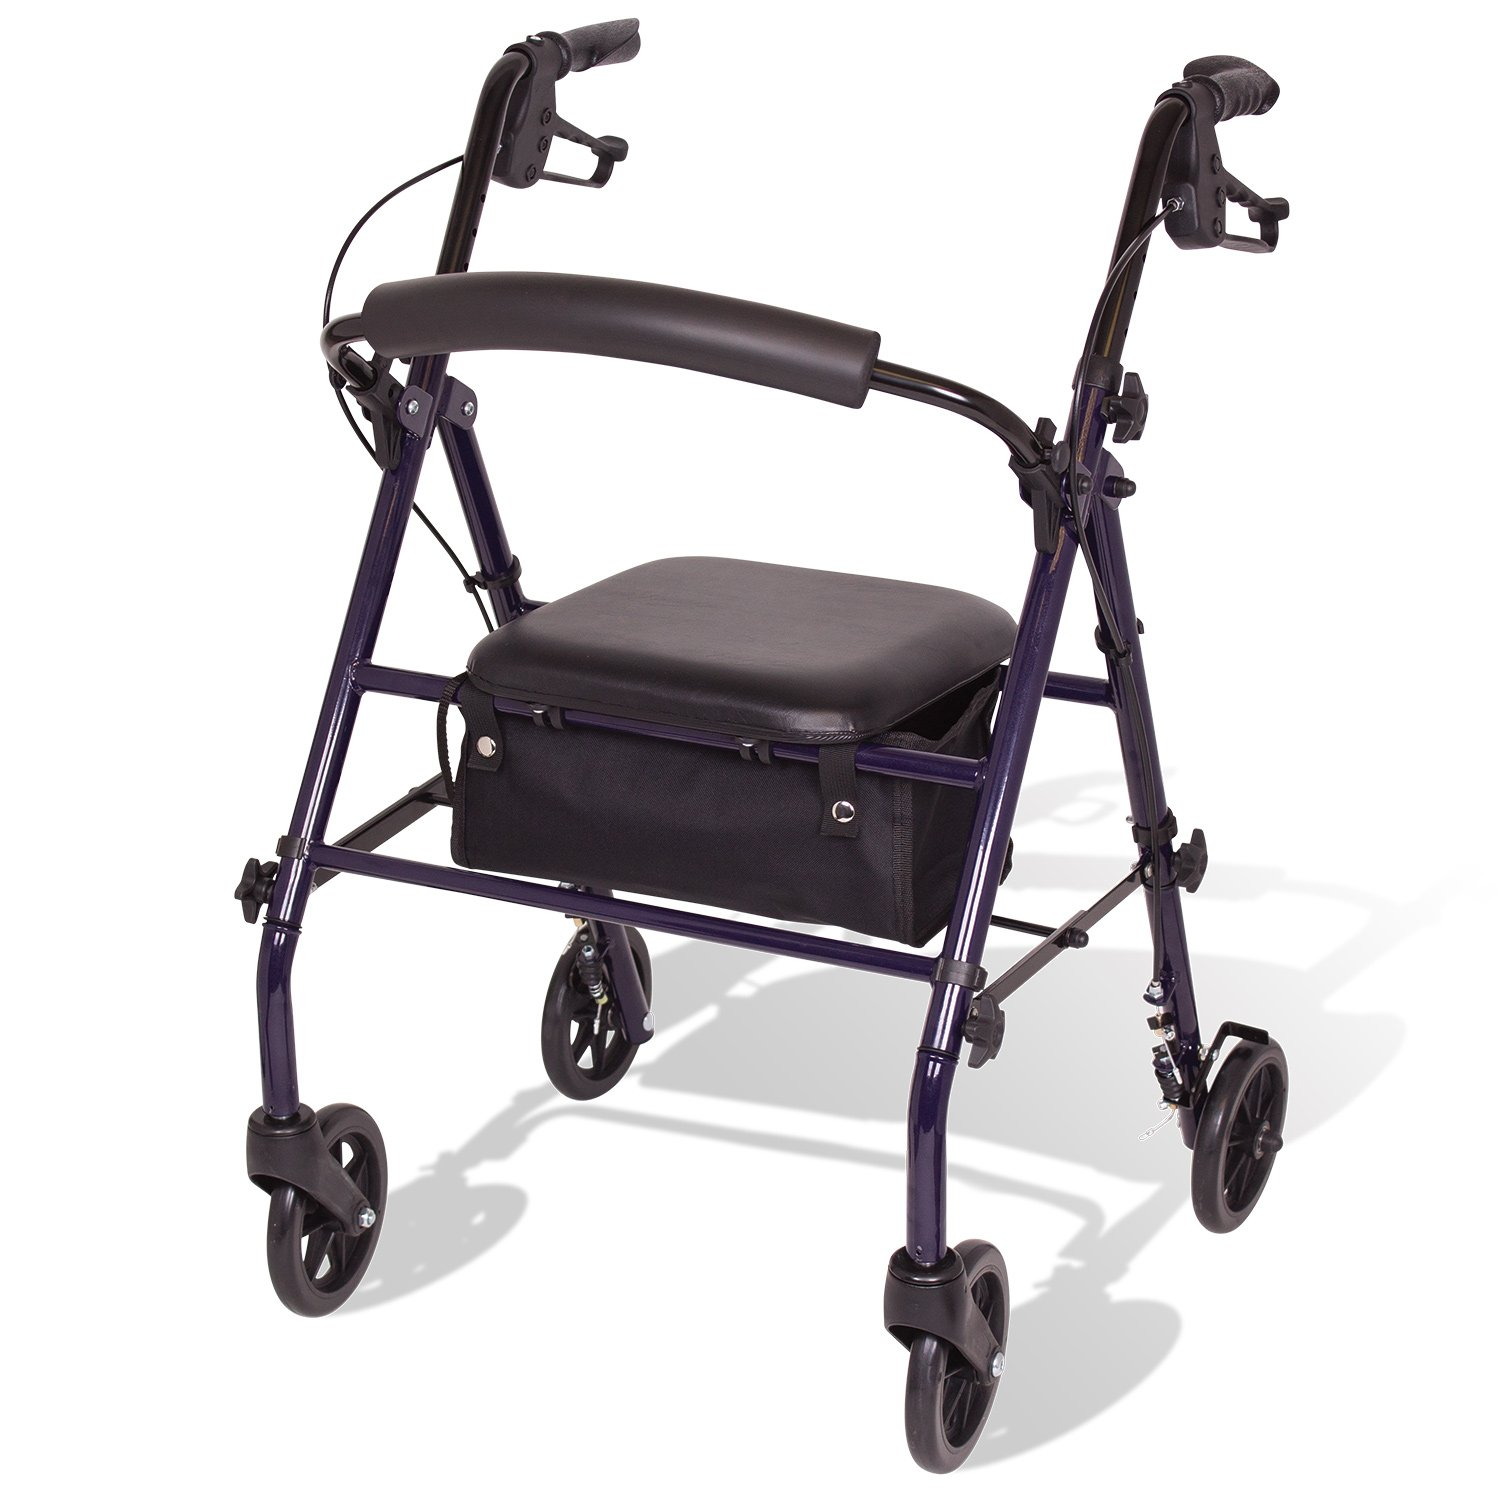 Carex Steel Rollator Walker with Seat and Wheels - Rolling Walker for Seniors - Walker Supports 350lbs, Foldable, For Those 5'0'' to 6'1'' by Carex